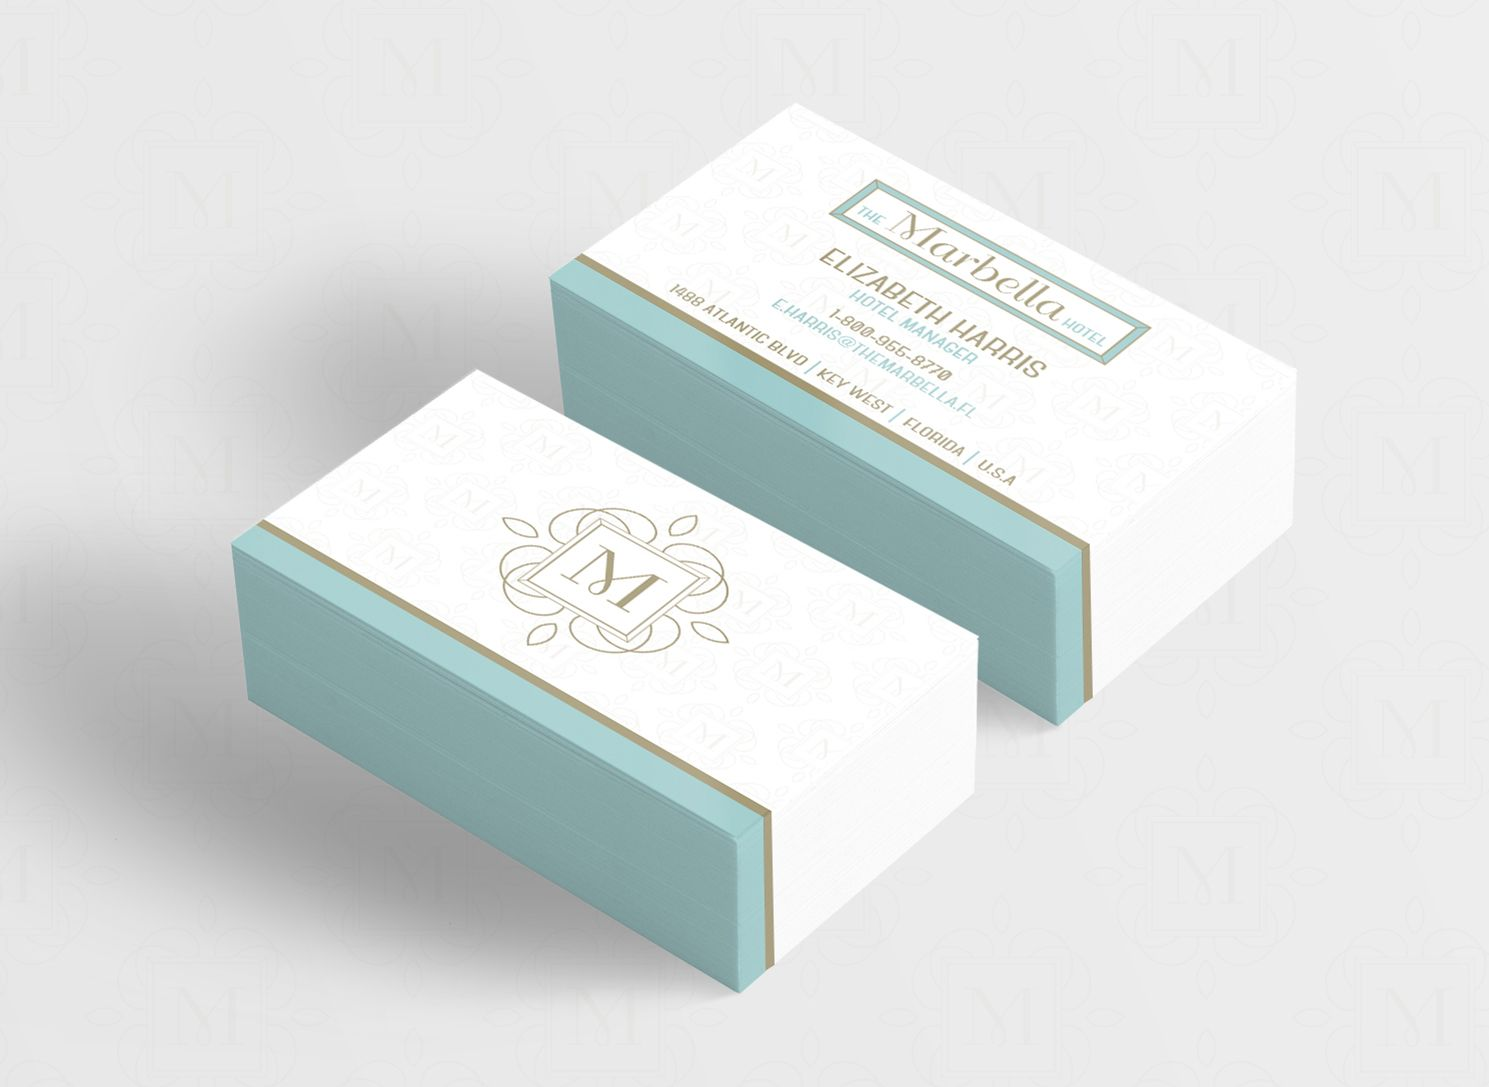 The Marbella Hotel Branding Brief - Business Card Design © 2016 KeepCreative. All rights reserved.